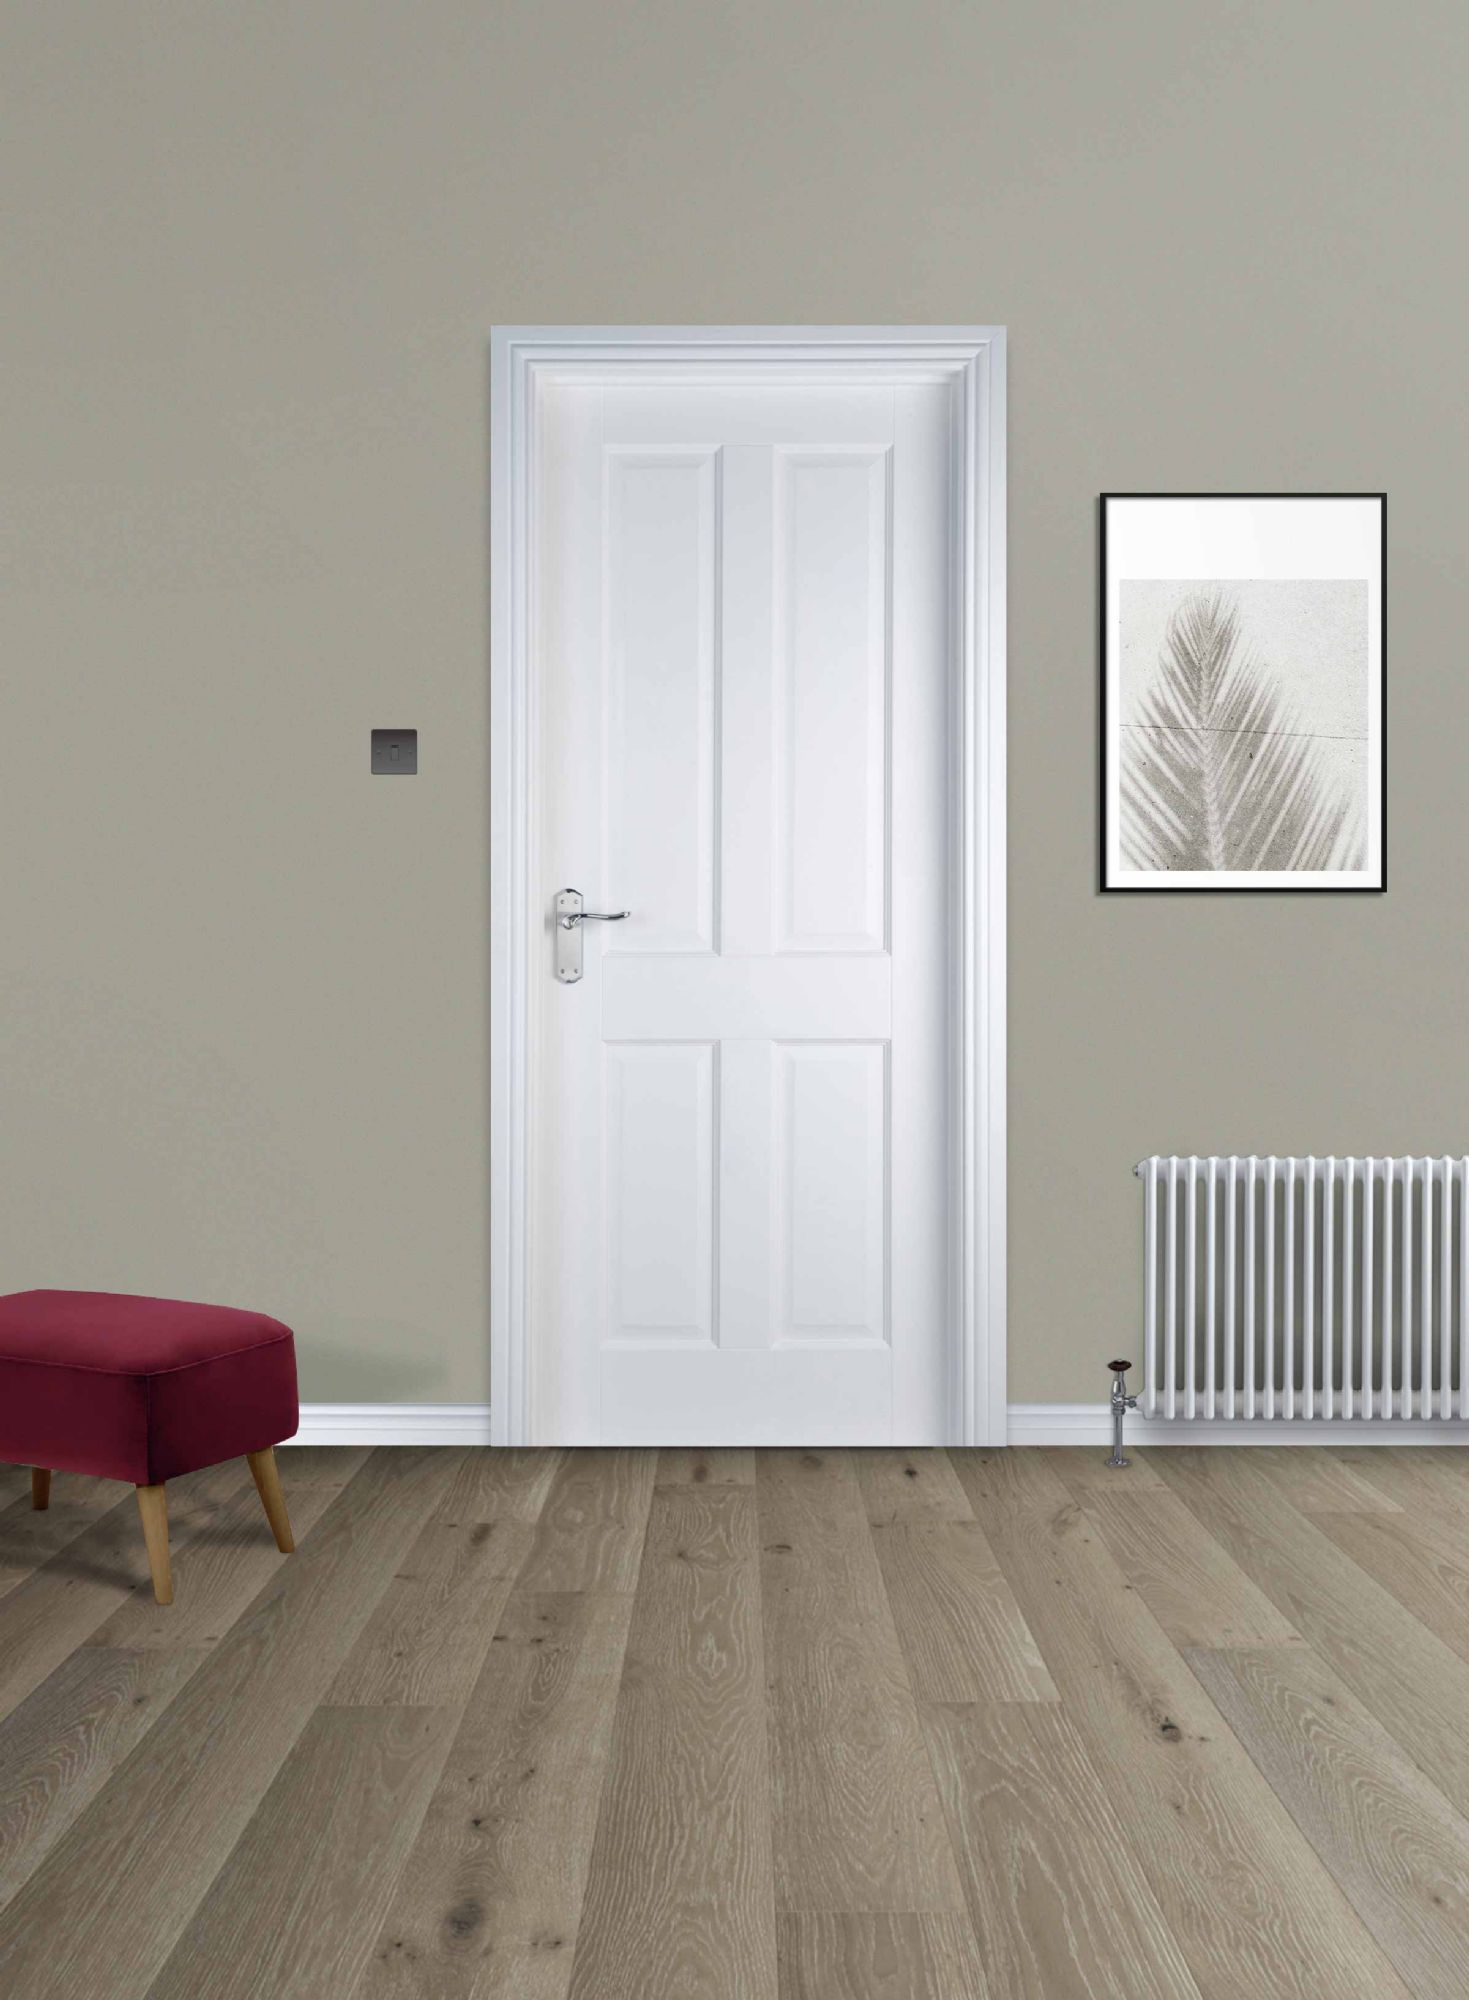 4 Panel White Primed Door (40mm)